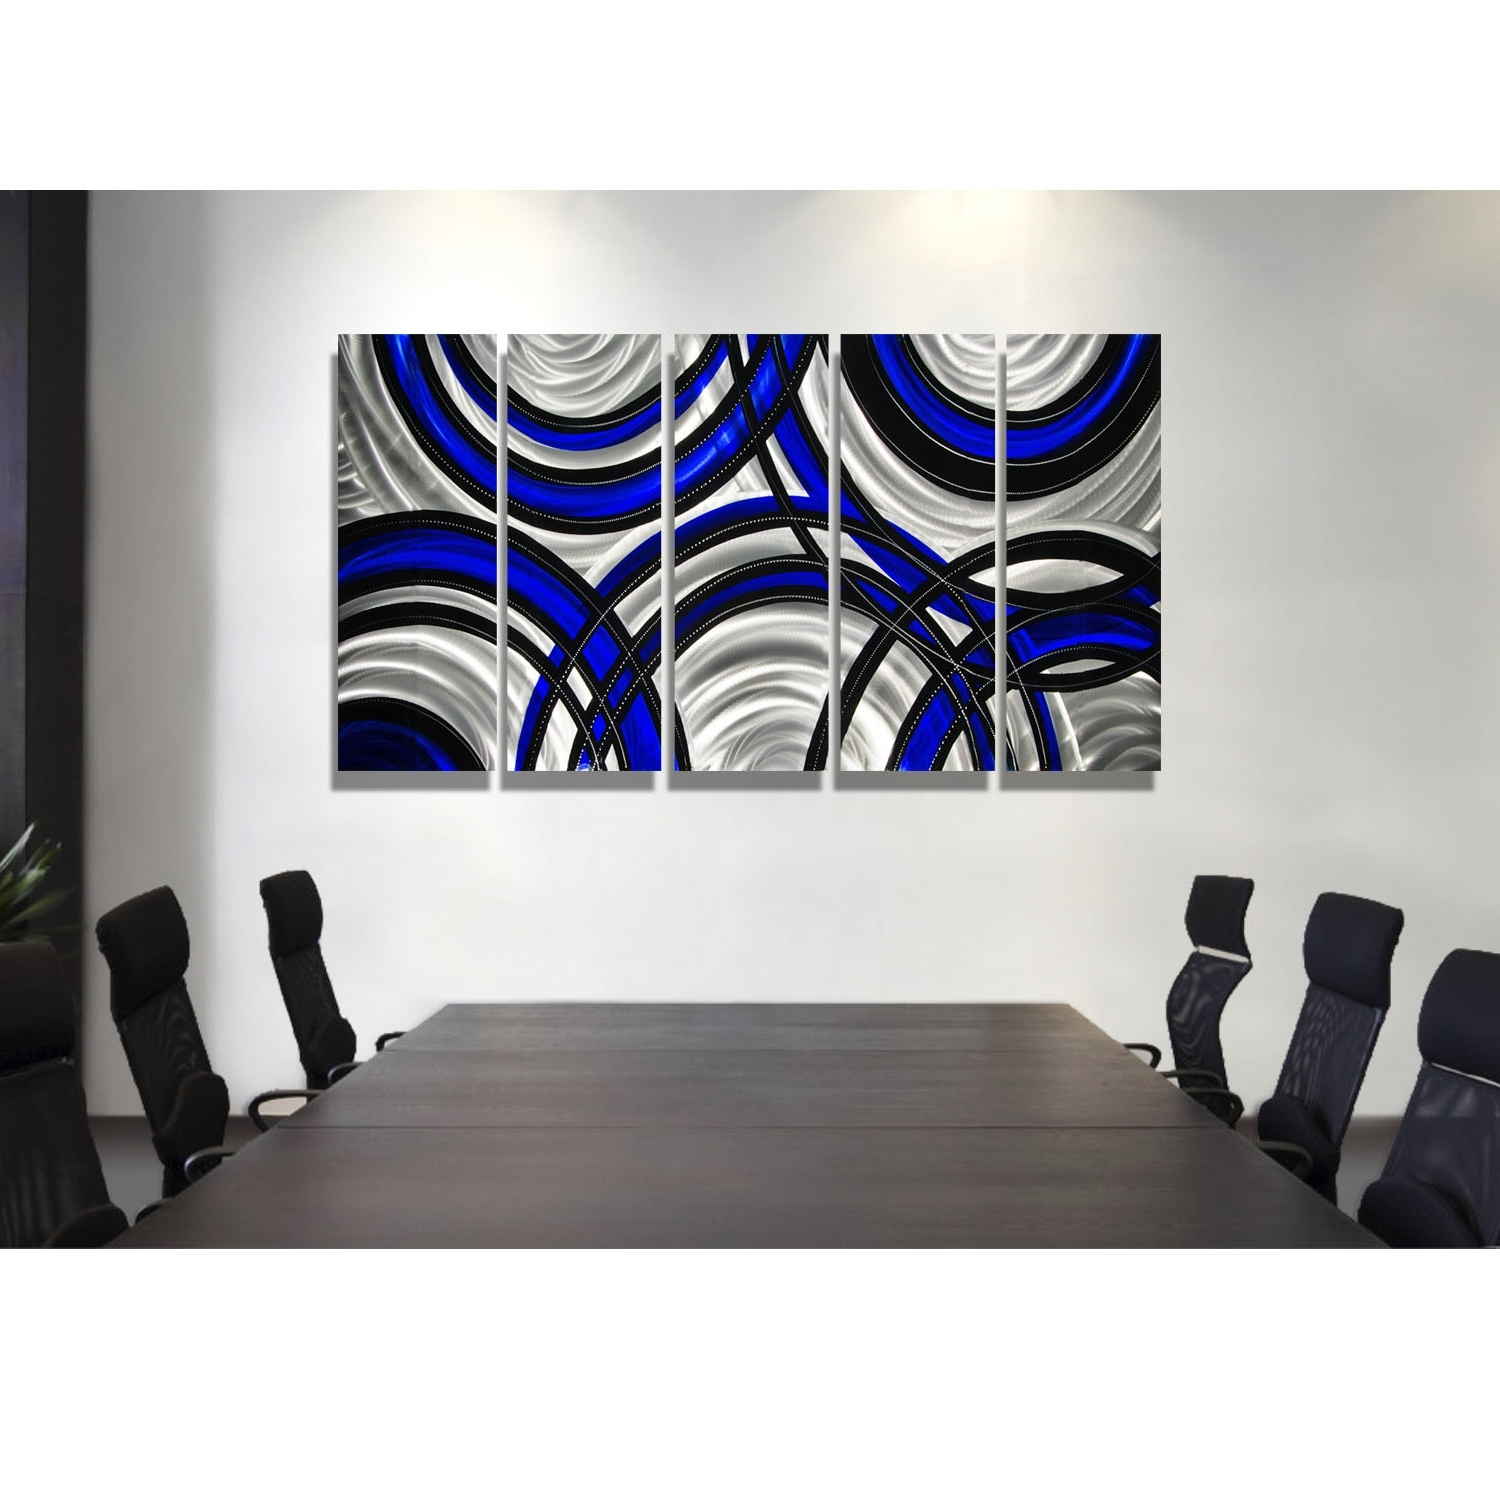 Blue Synergy – Blue, Black And Silver Metal Wall Art – 5 Panel In Most Up To Date Blue And Silver Wall Art (View 6 of 15)